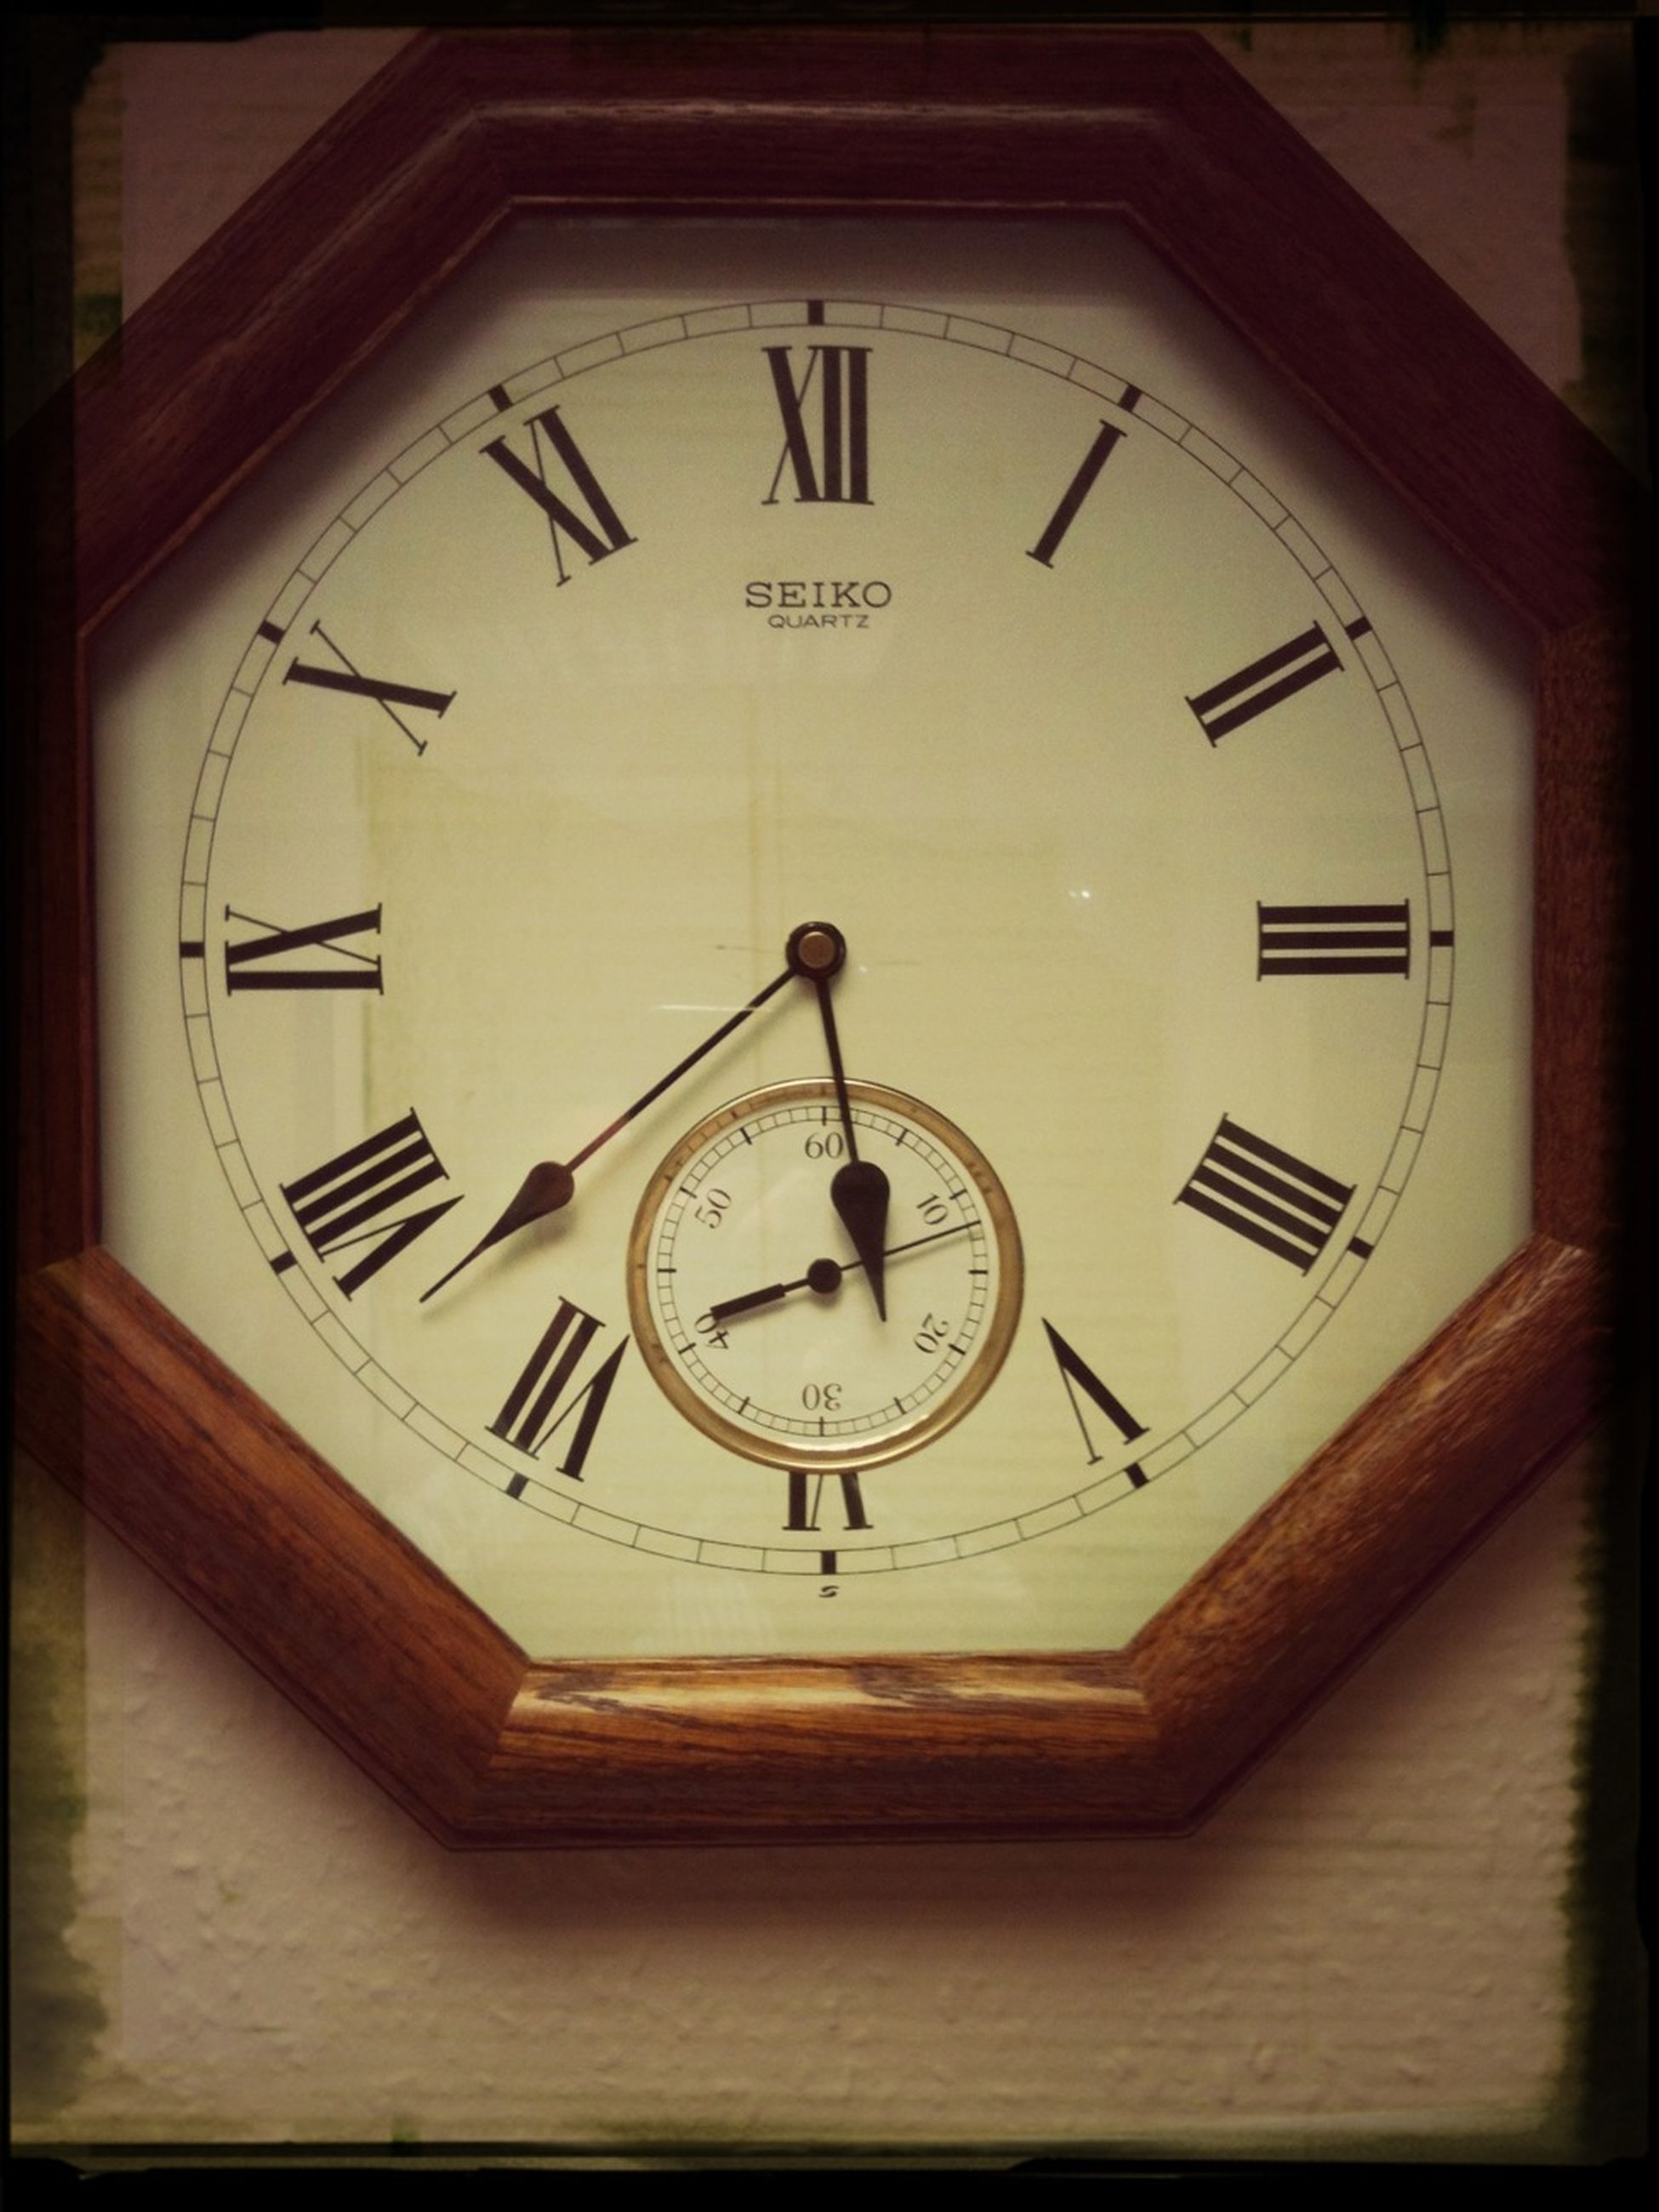 clock, time, indoors, communication, number, clock face, text, instrument of time, wall clock, close-up, minute hand, accuracy, circle, roman numeral, technology, western script, old-fashioned, single object, no people, low angle view